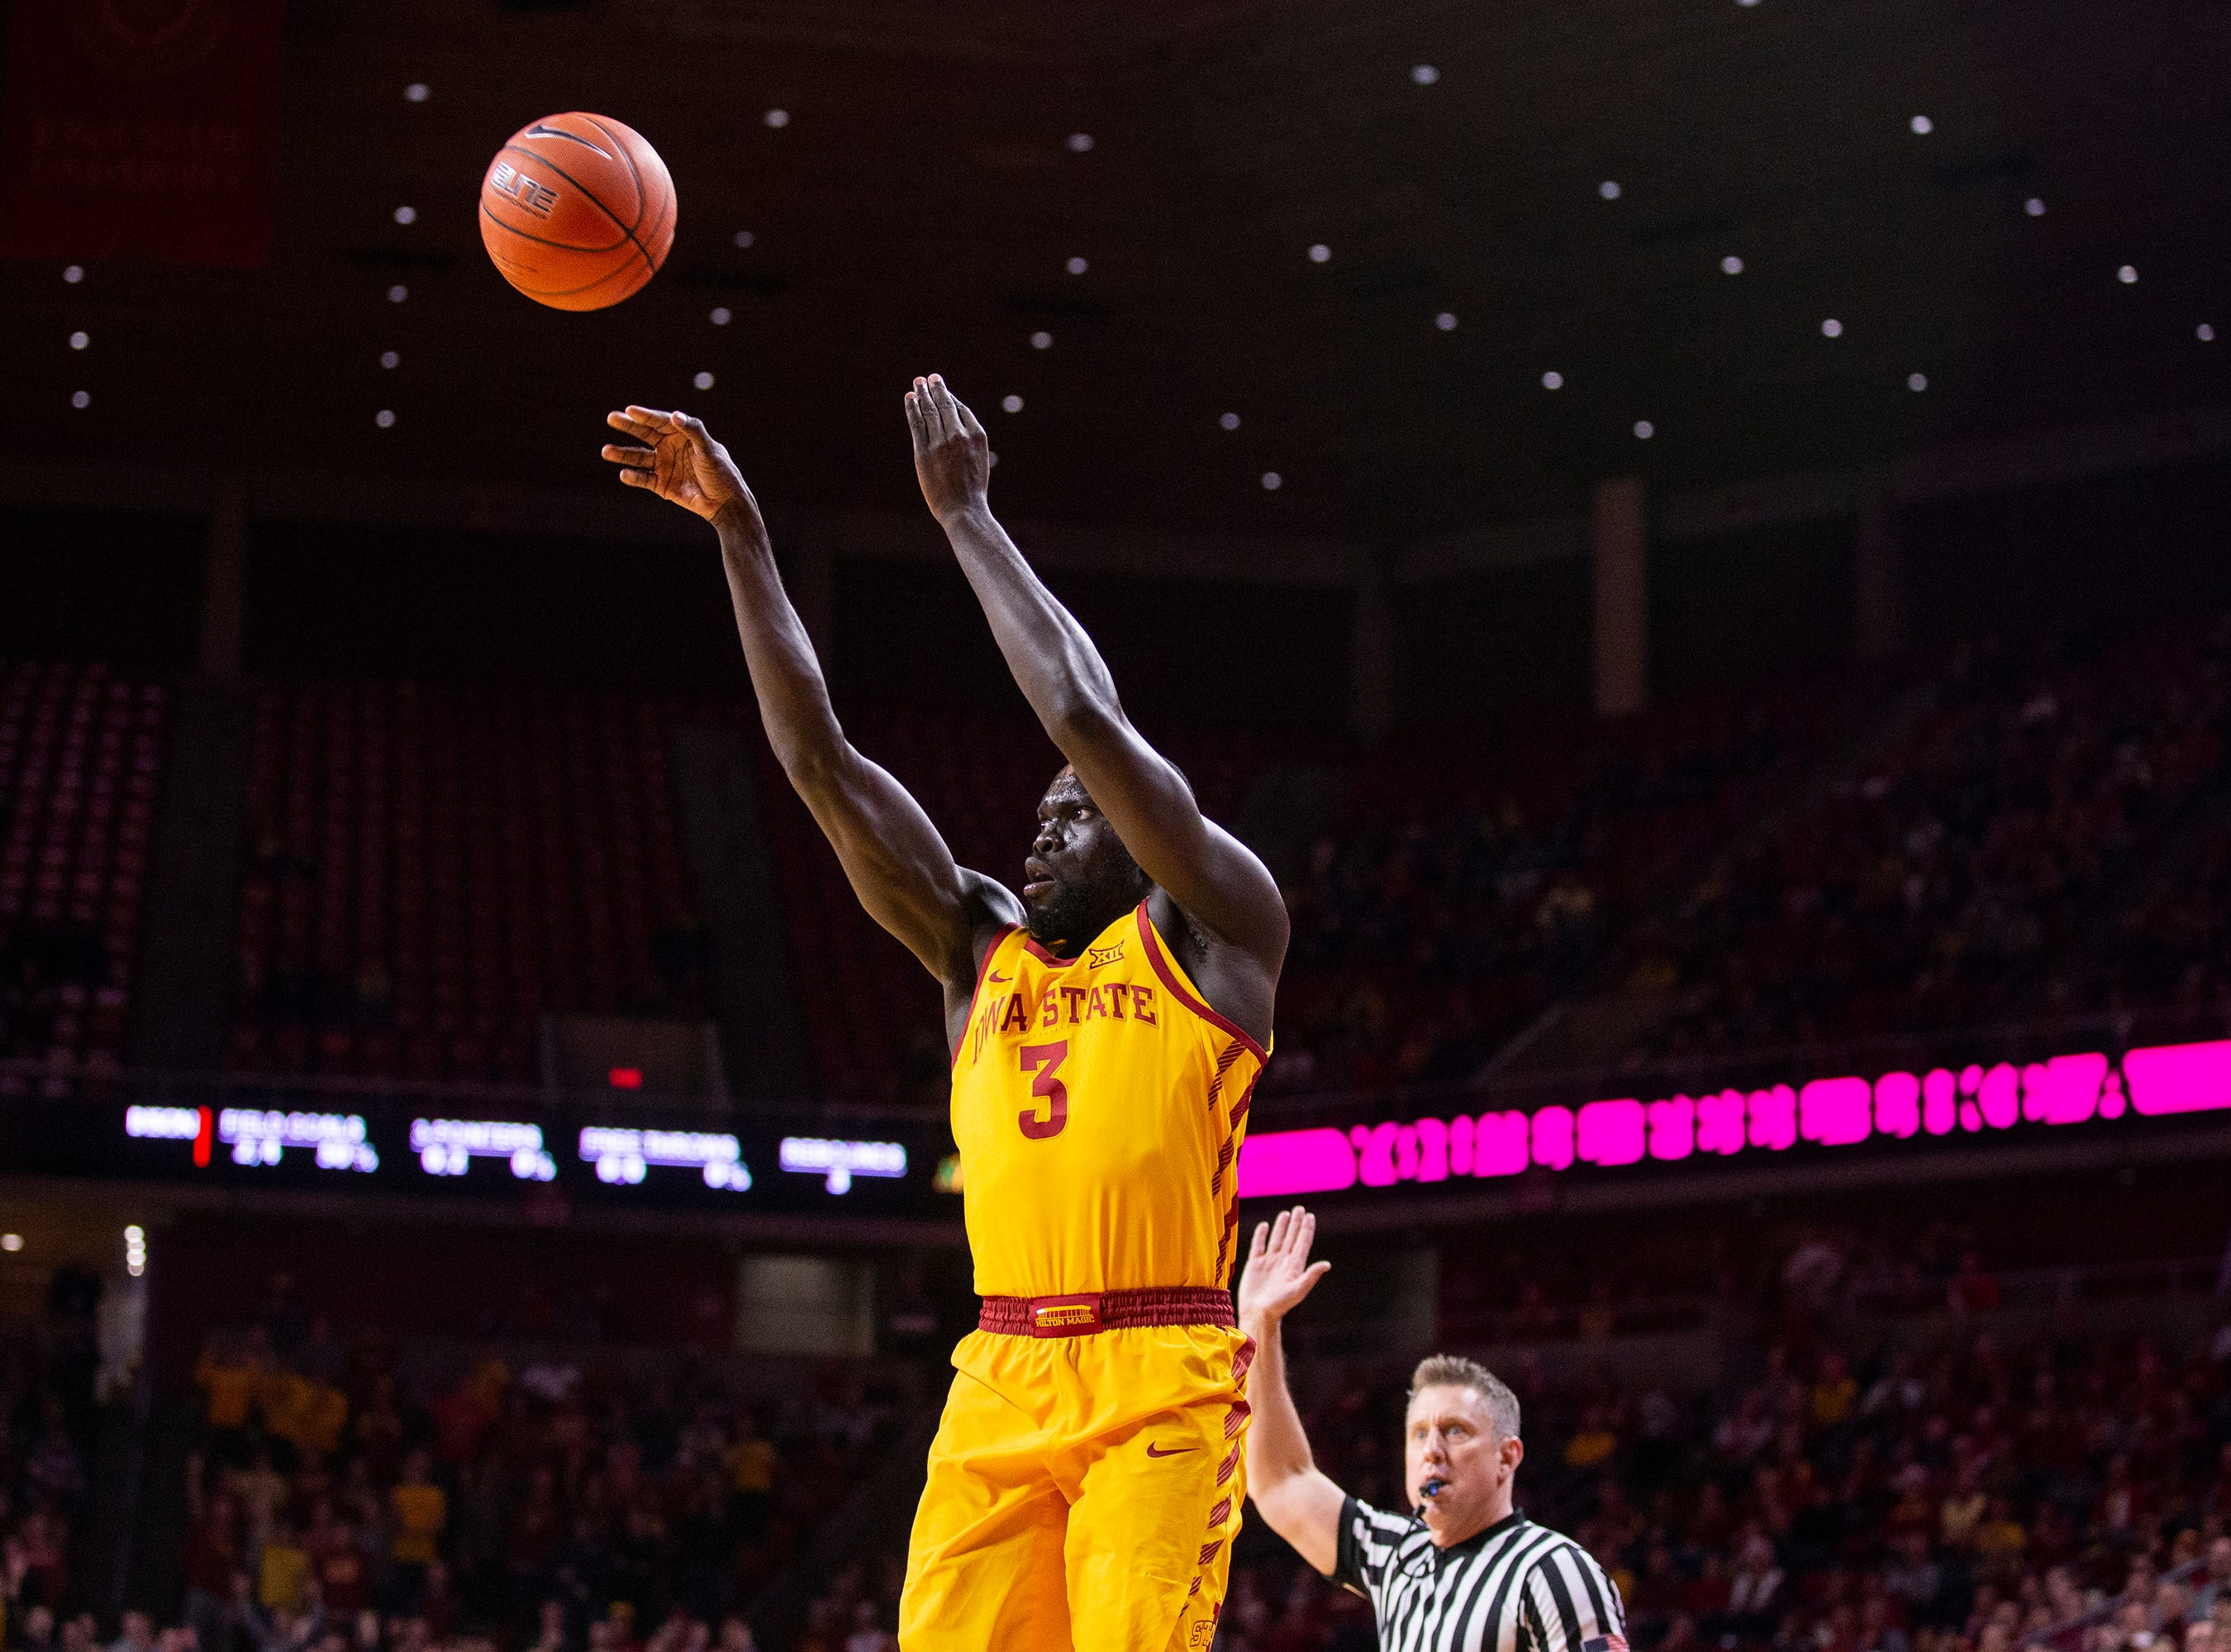 Iowa State's Marial Shayok shoots the ball during the Iowa State men's basketball game against North Dakota State University on Monday, Dec. 3, 2018, in Hilton Coliseum.